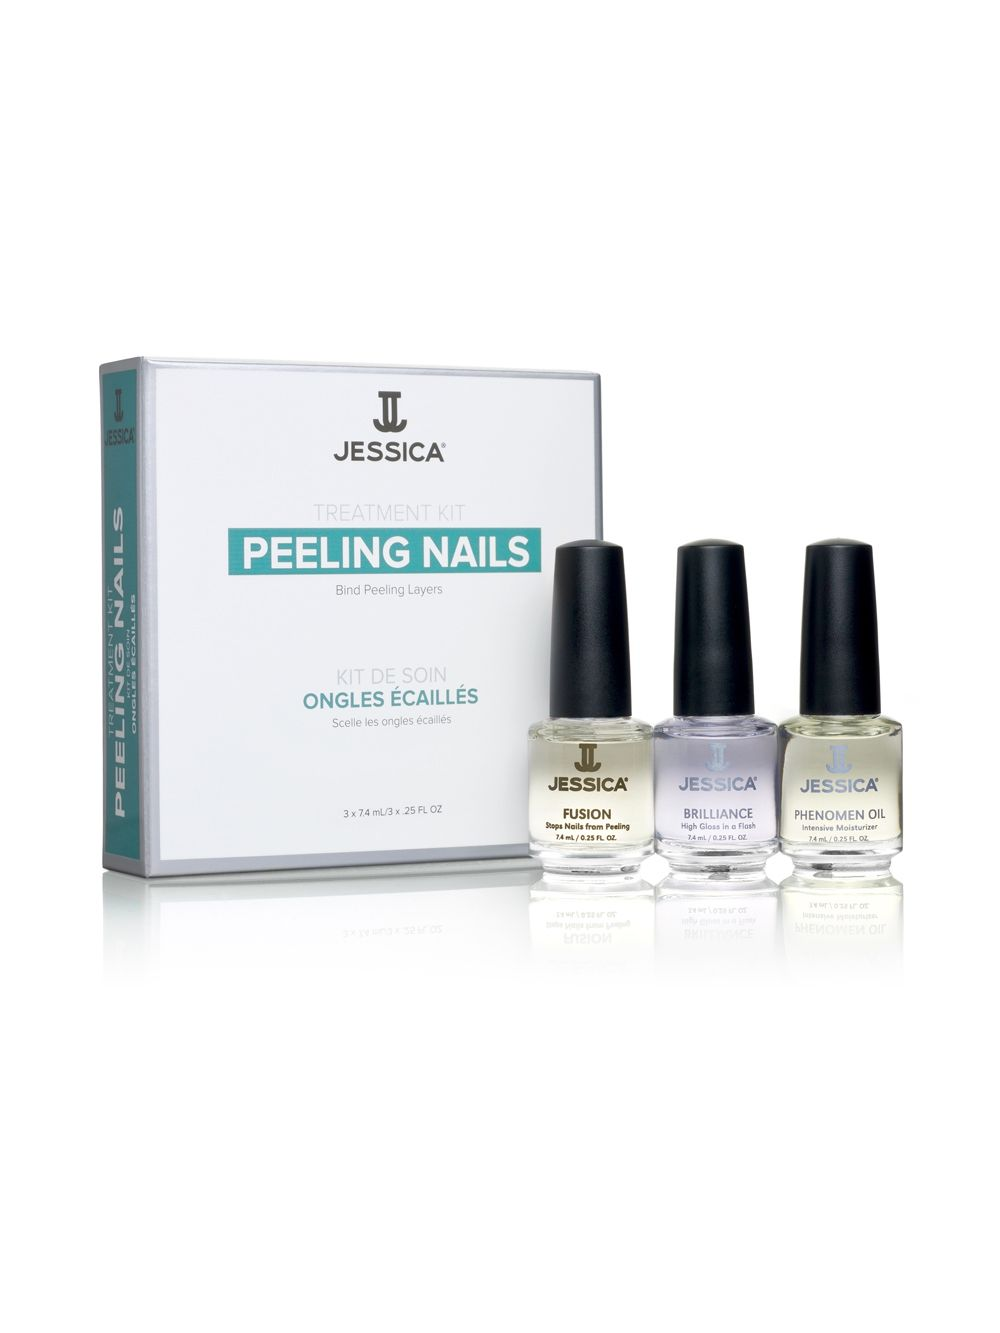 Peeling Nails Treatment Kit - Jessica Cosmetics